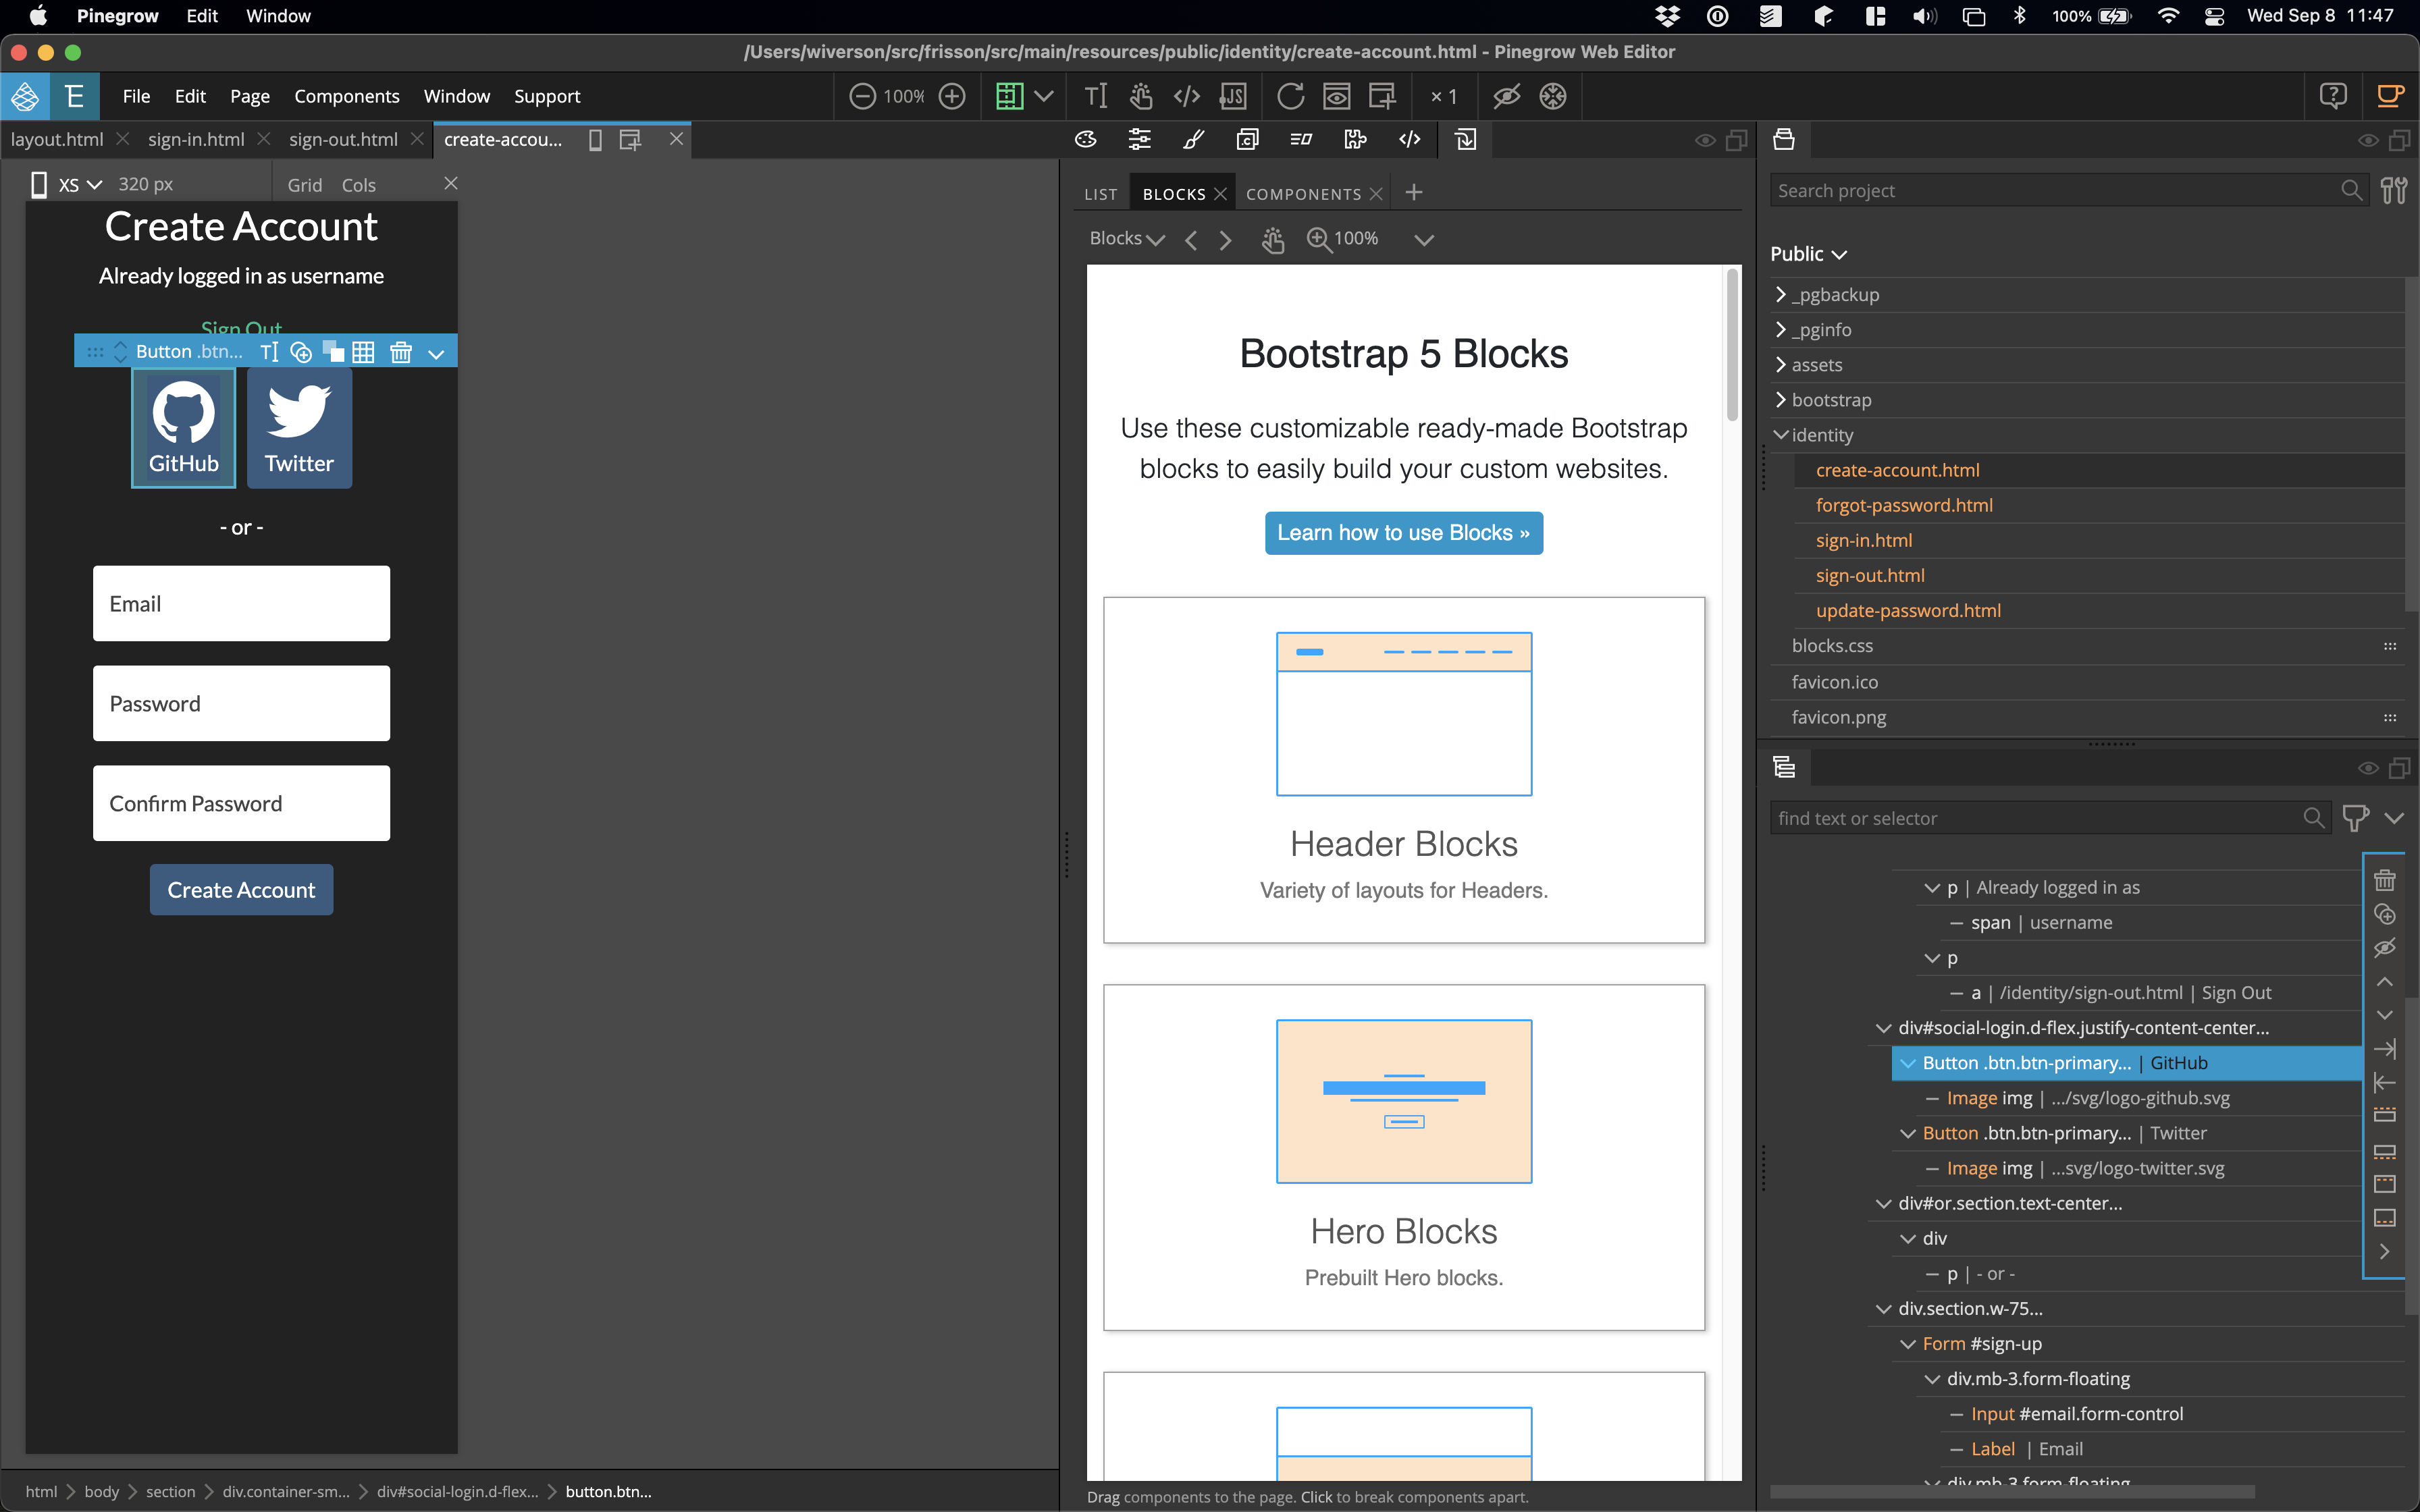 Mobile and Bootstrap Blocks